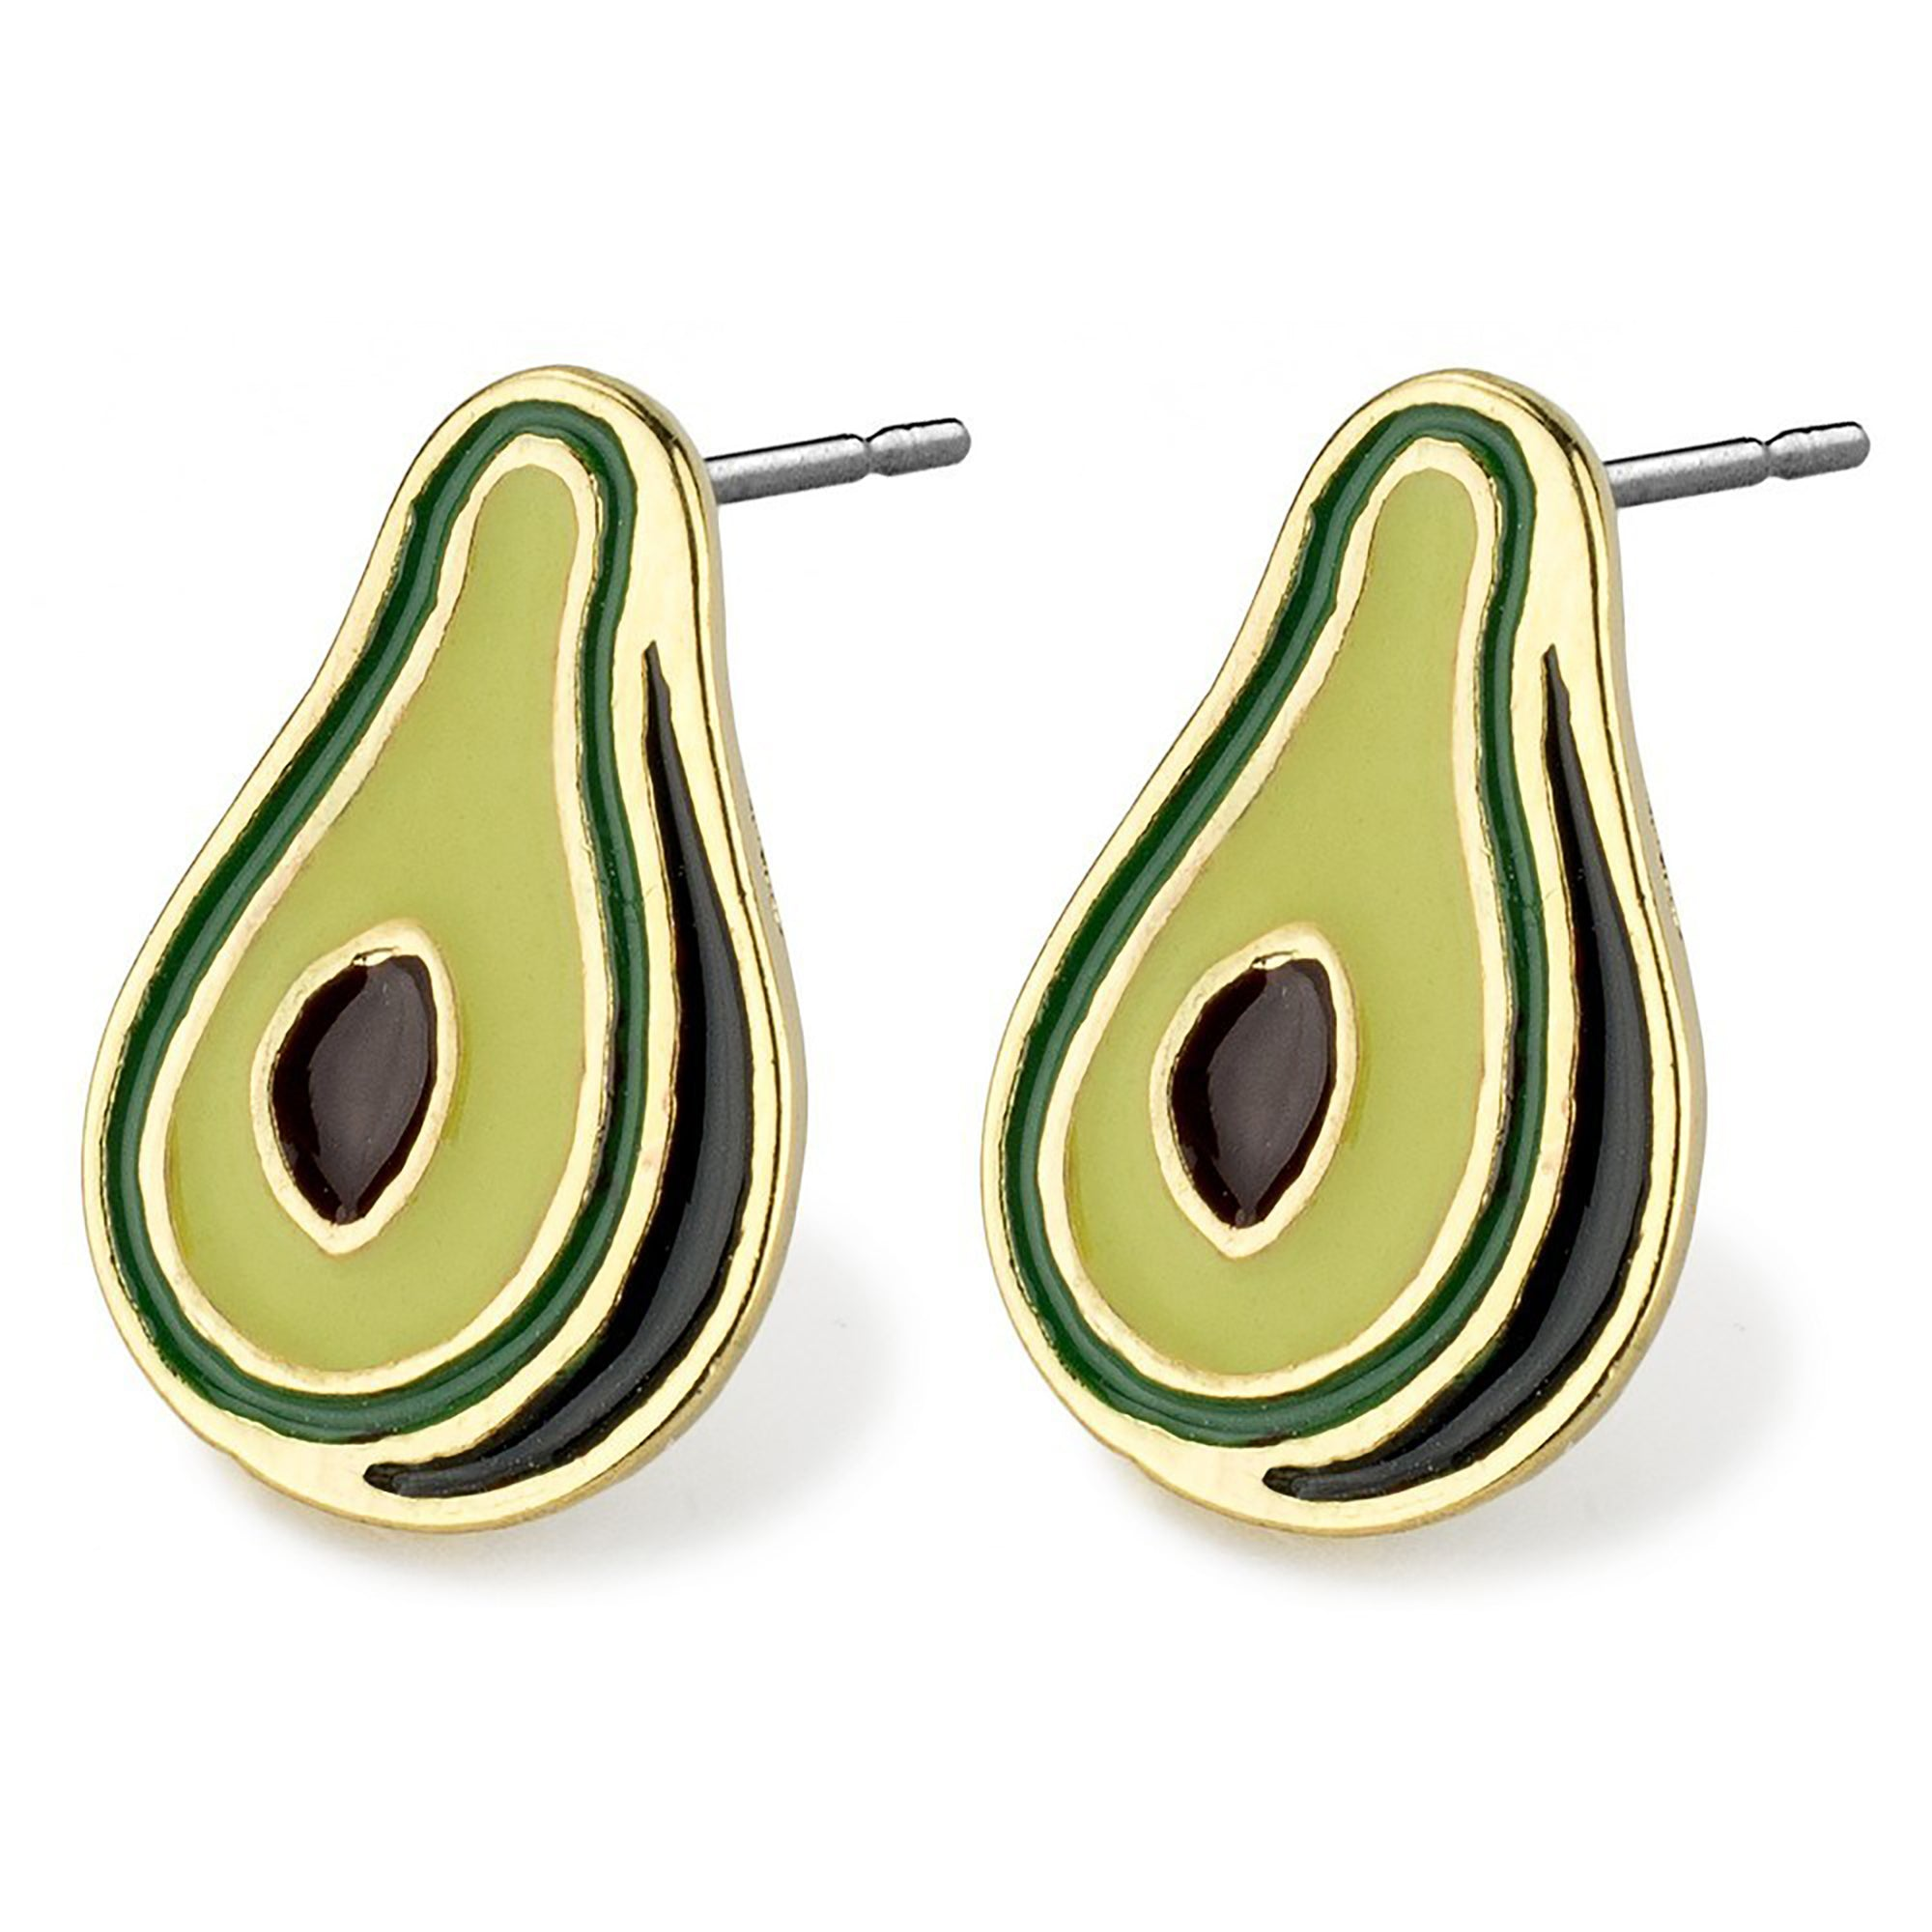 Avocado Stud Earrings | Getty Store